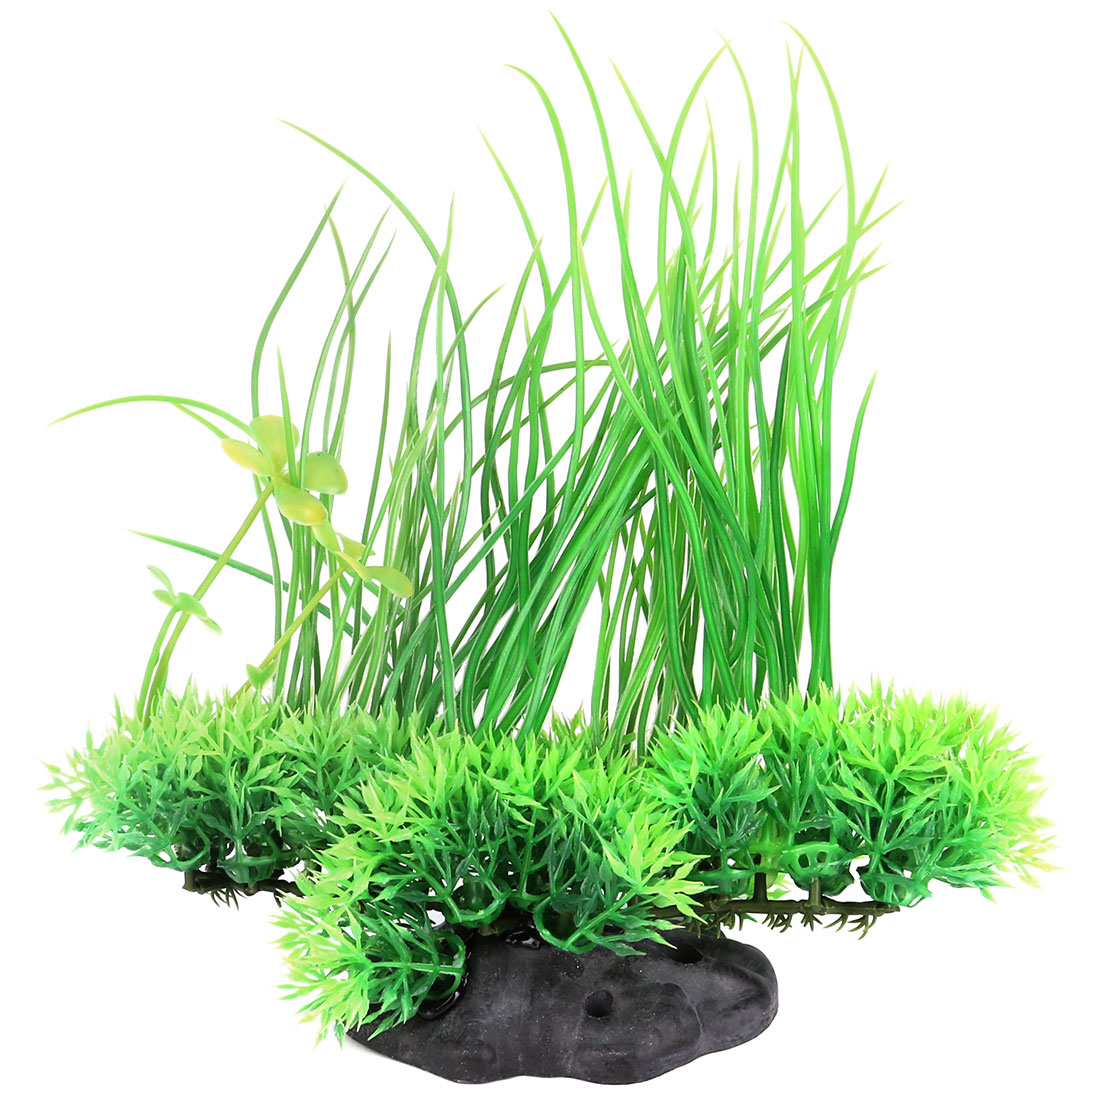 Aquarium Plastic Emulational Artificial Plant Grass Decoration Green 20cm Height